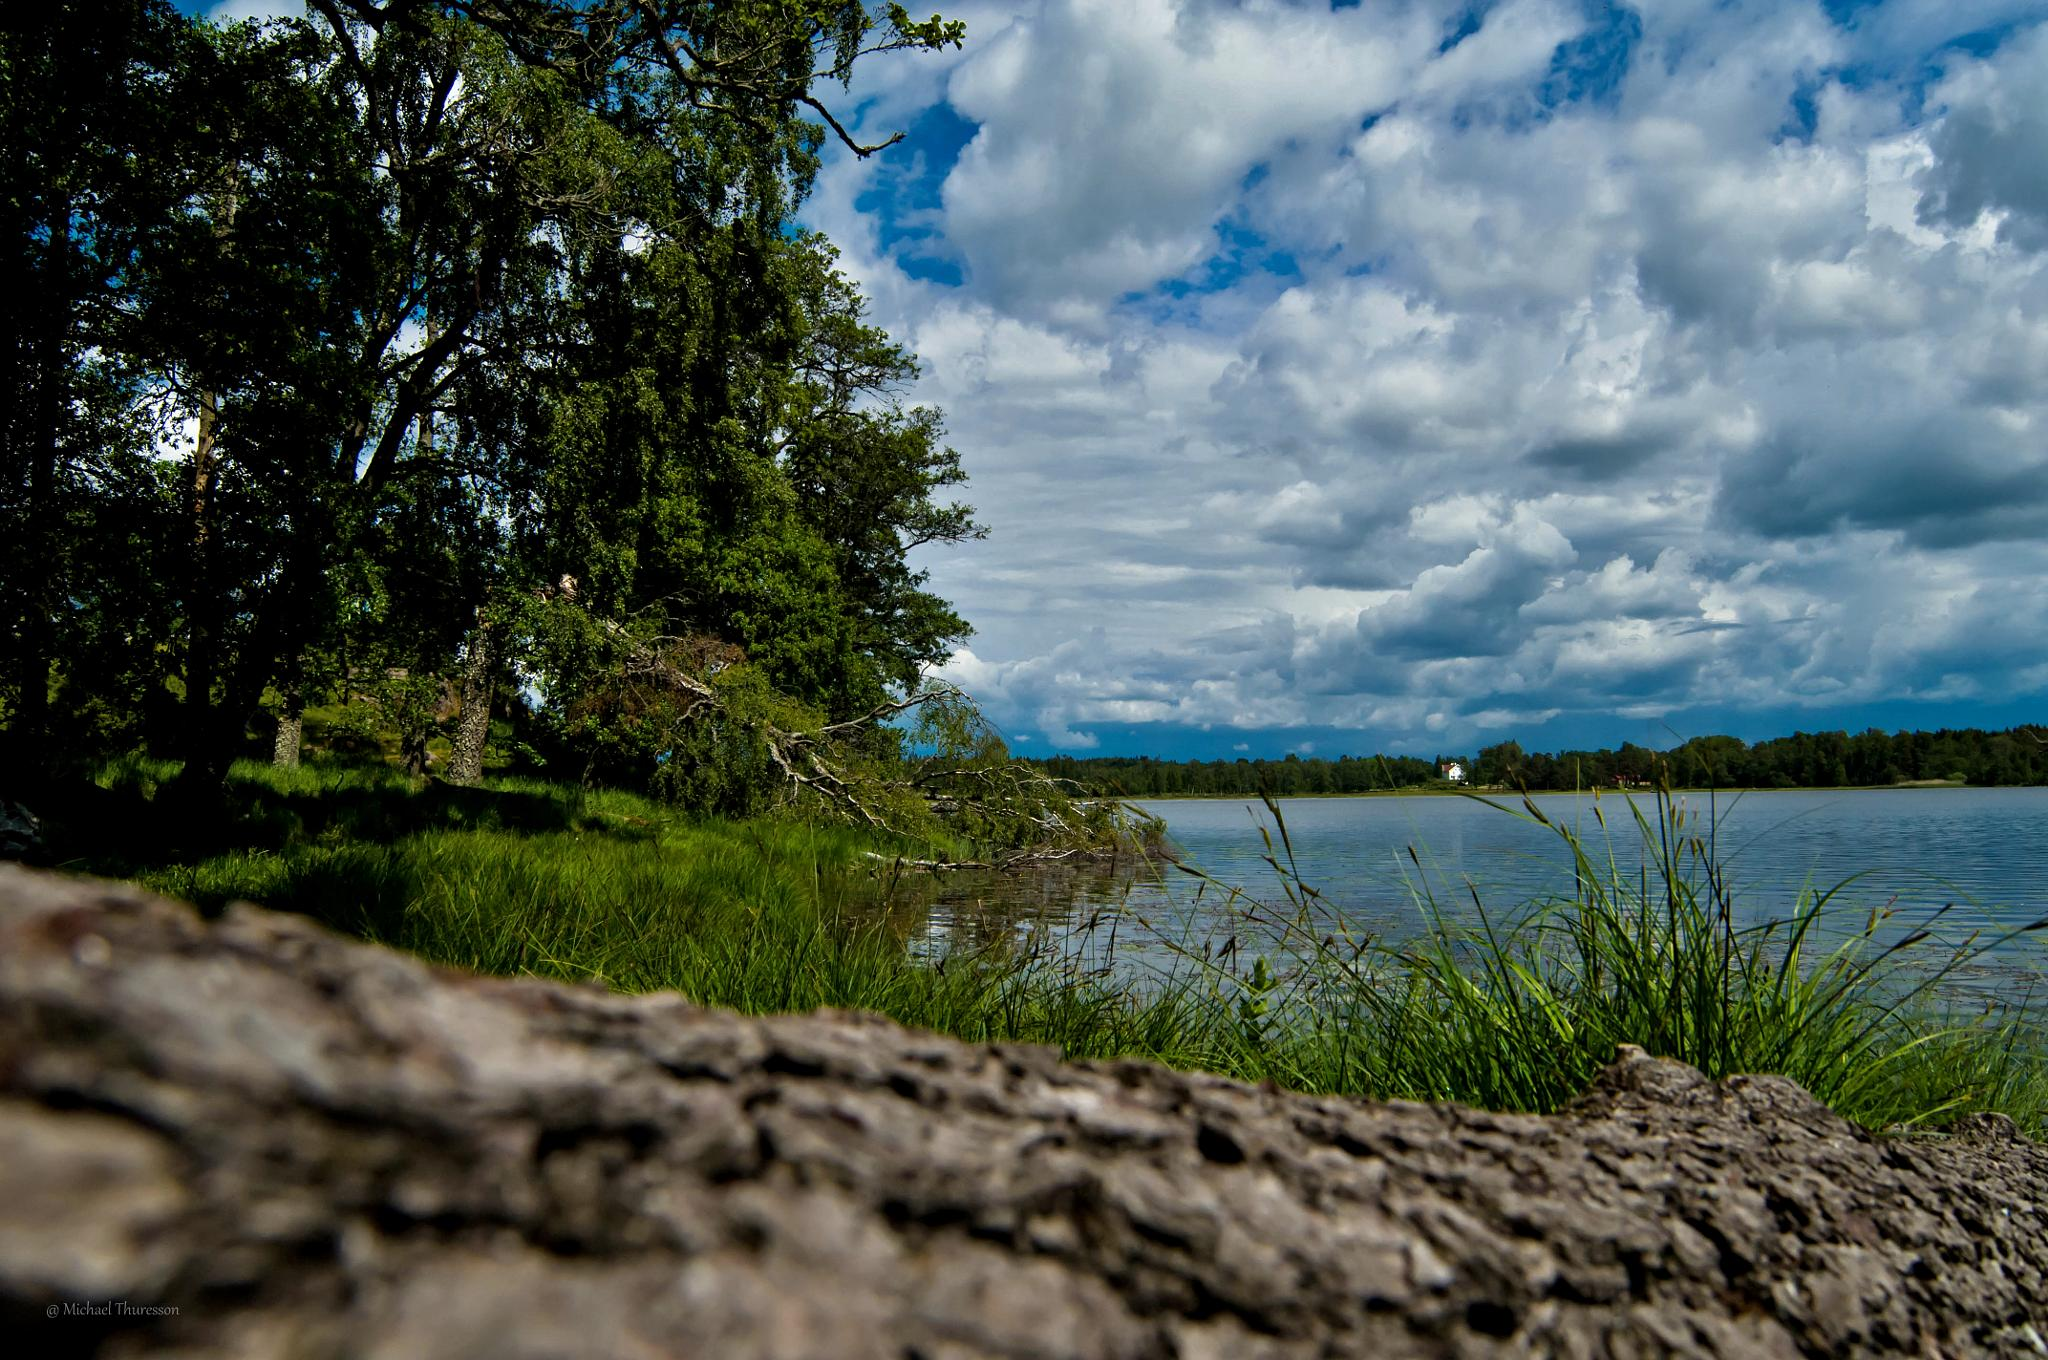 Nature reserve by michael.thuresson.5